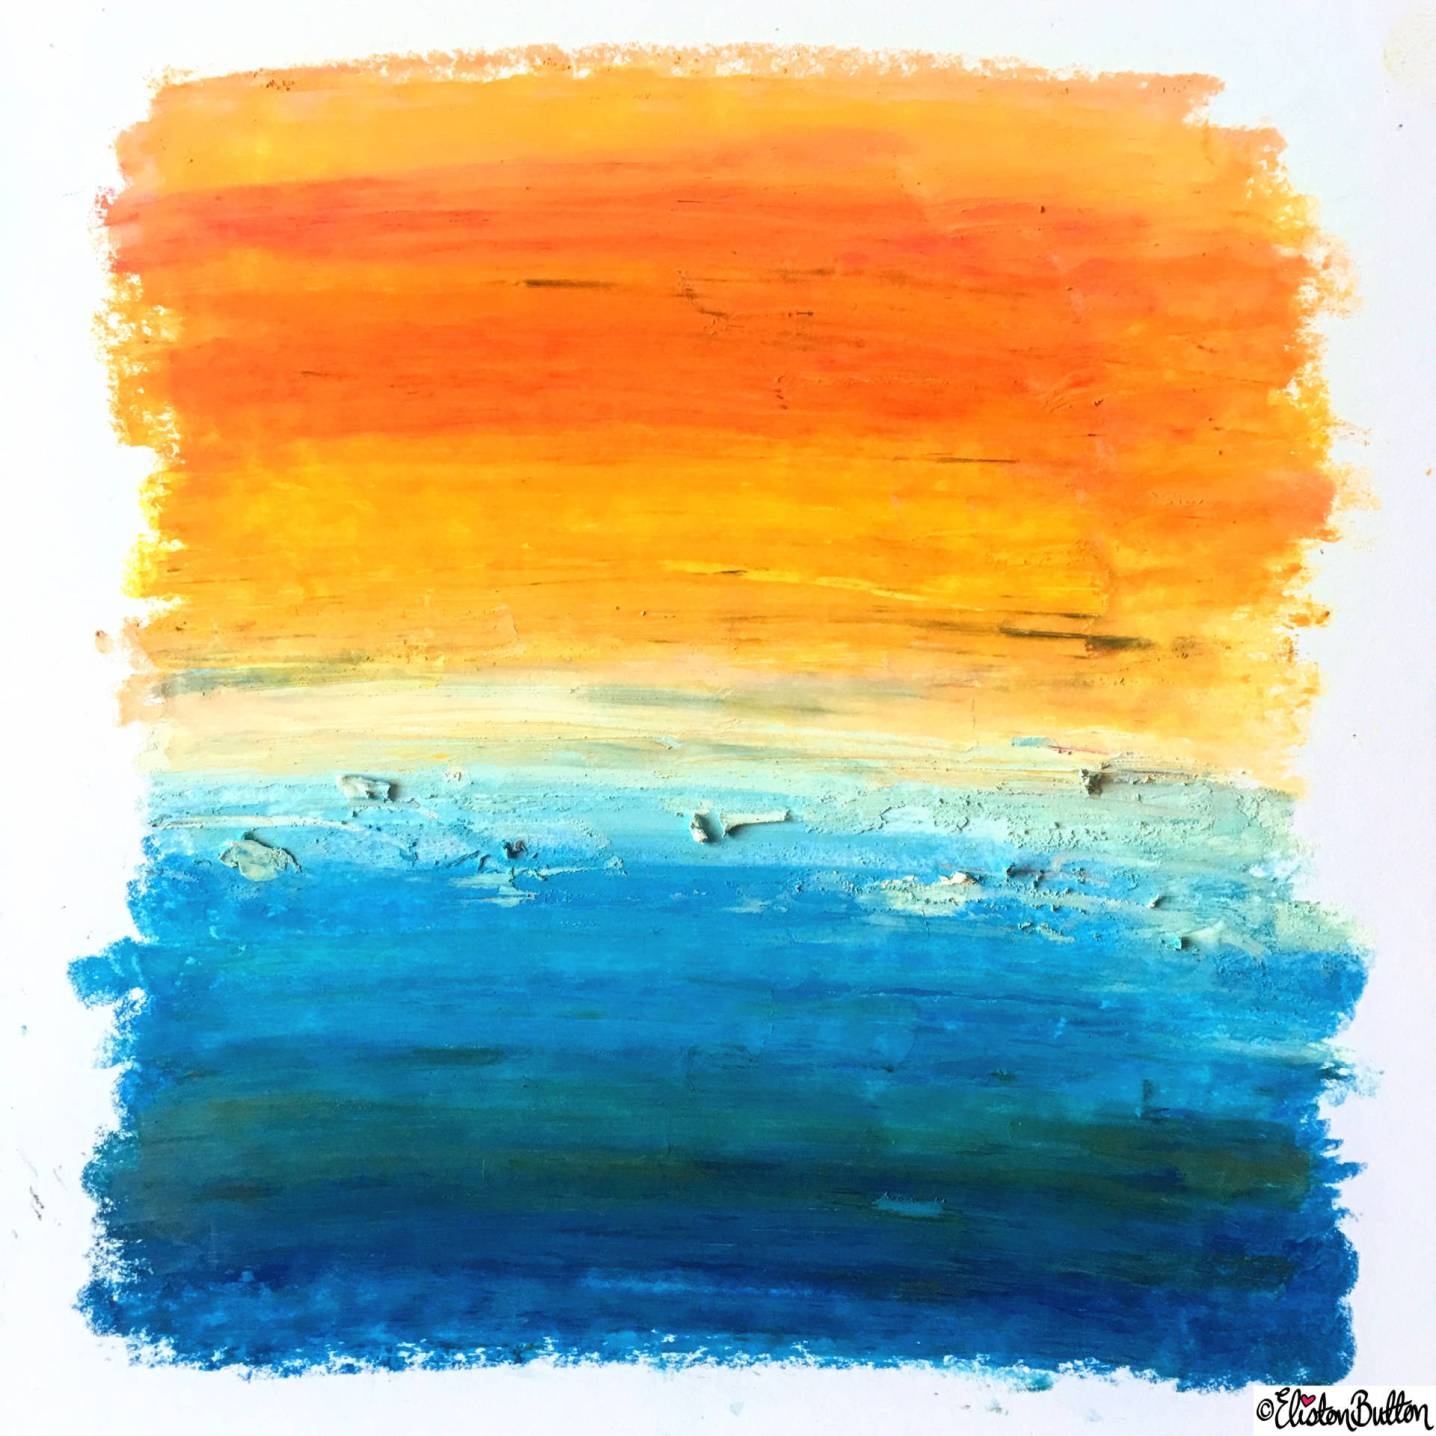 Day 12 - Abstract - Oil Pastel Sunset Wall Art - Photo-a-Day – March 2016 at www.elistonbutton.com - Eliston Button - That Crafty Kid – Art, Design, Craft & Adventure.